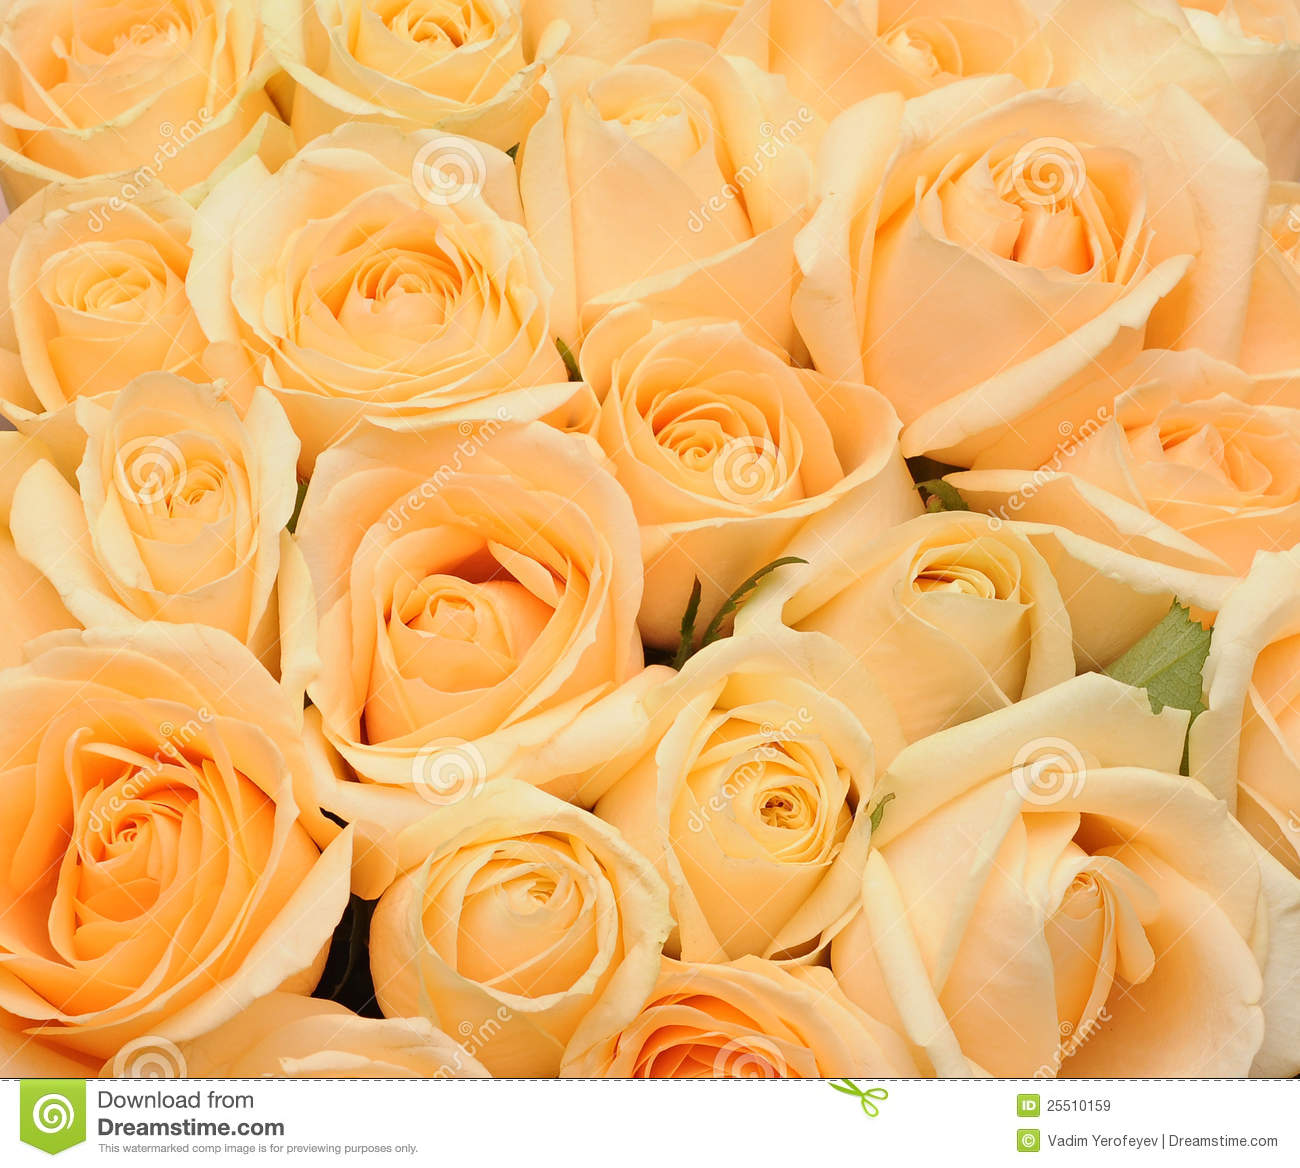 Cream Roses Background Royalty Free Stock Images - Image: 25510159